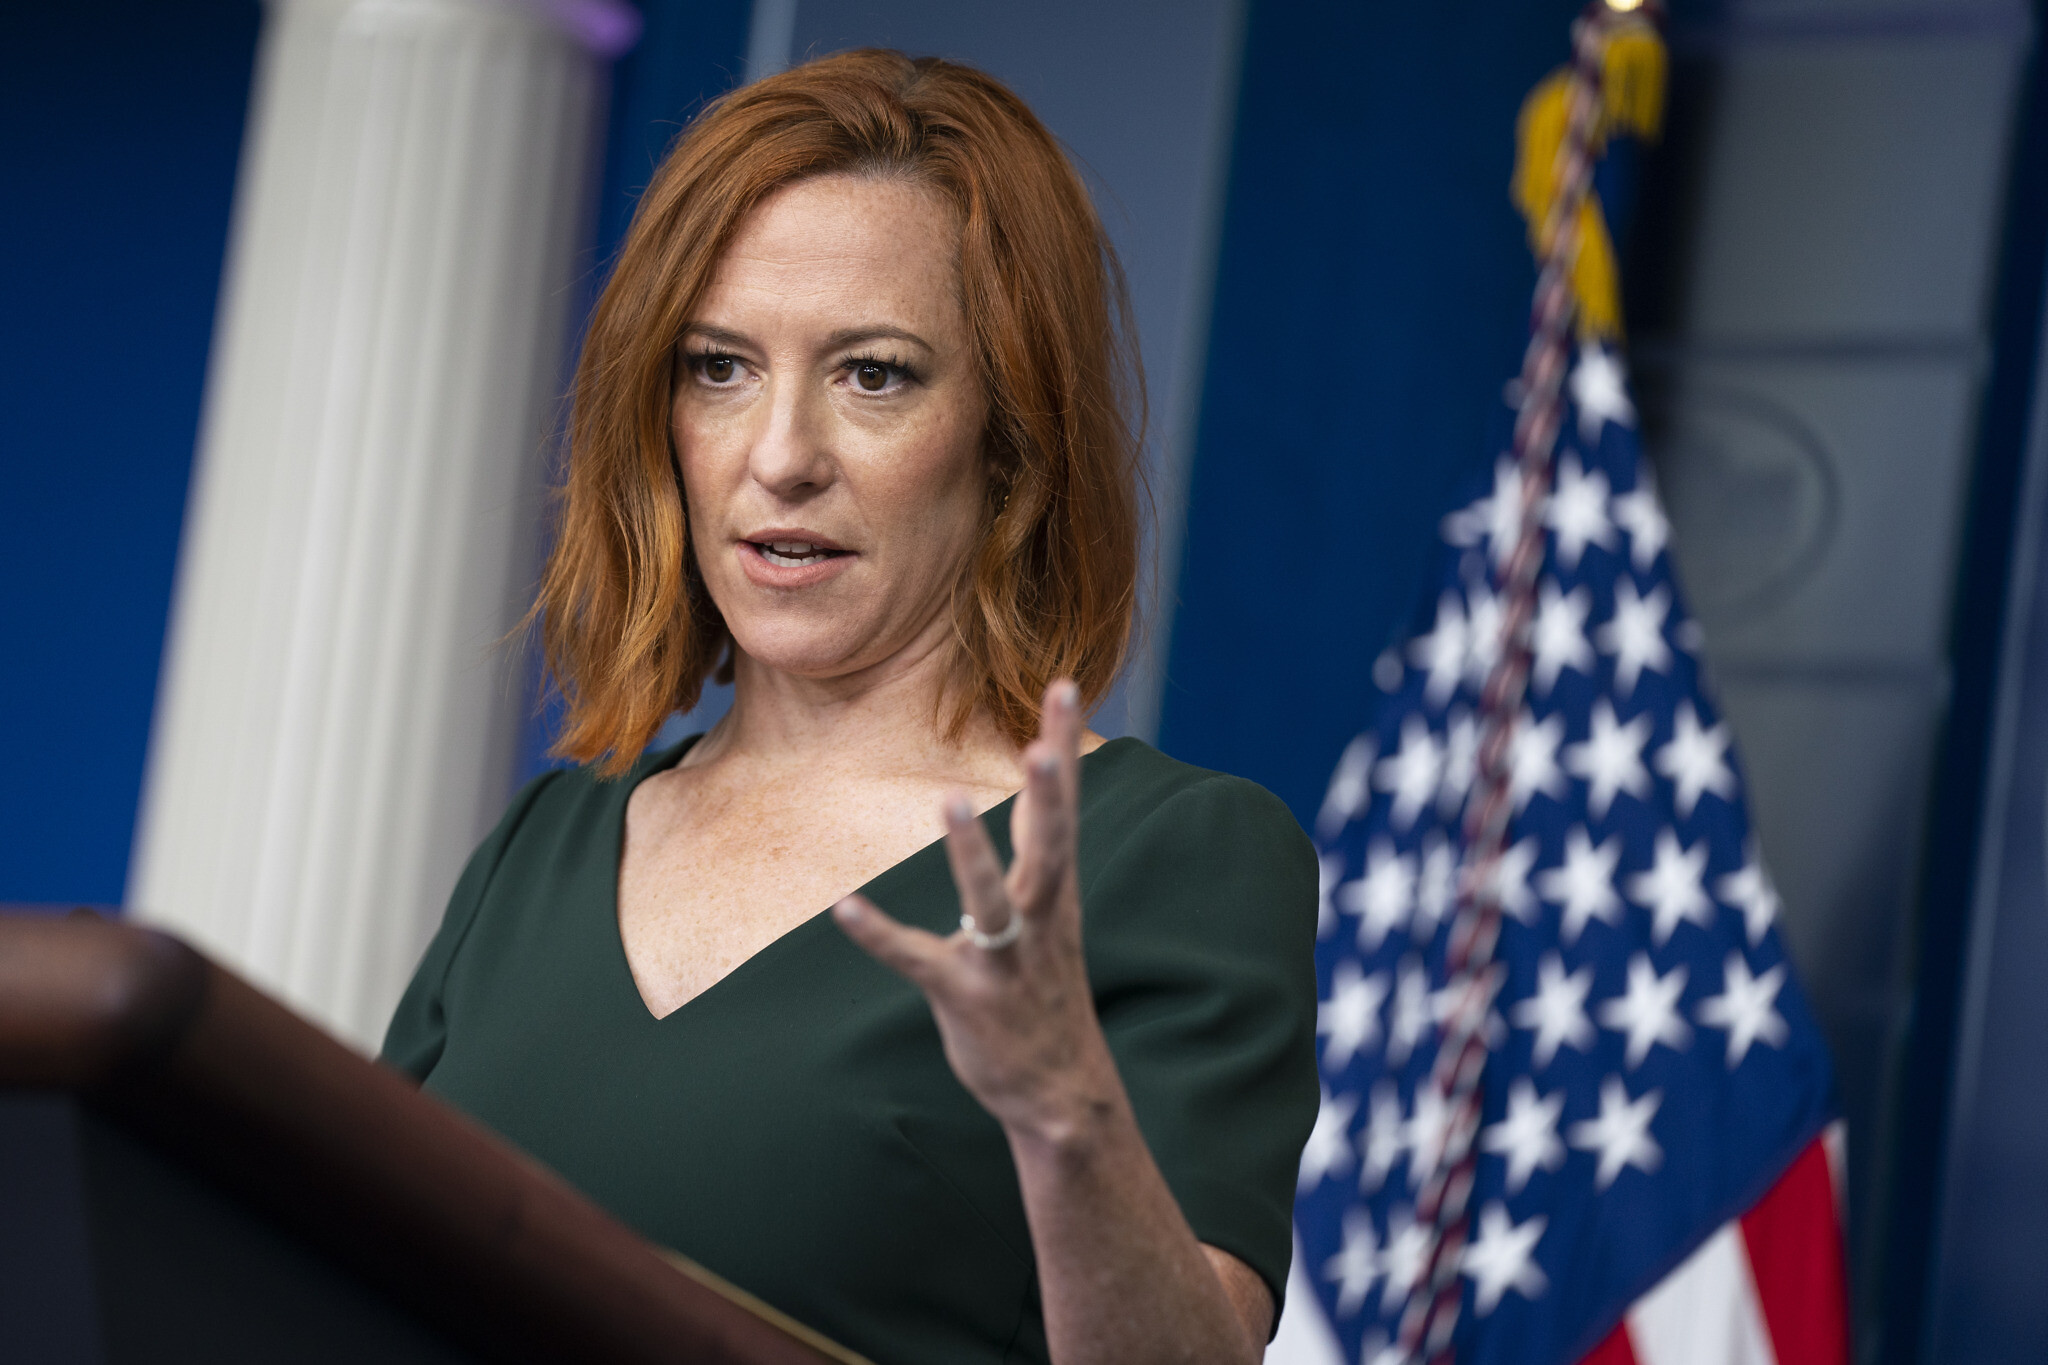 Vaccinated White House official tests positive for COVID | The Times of Israel